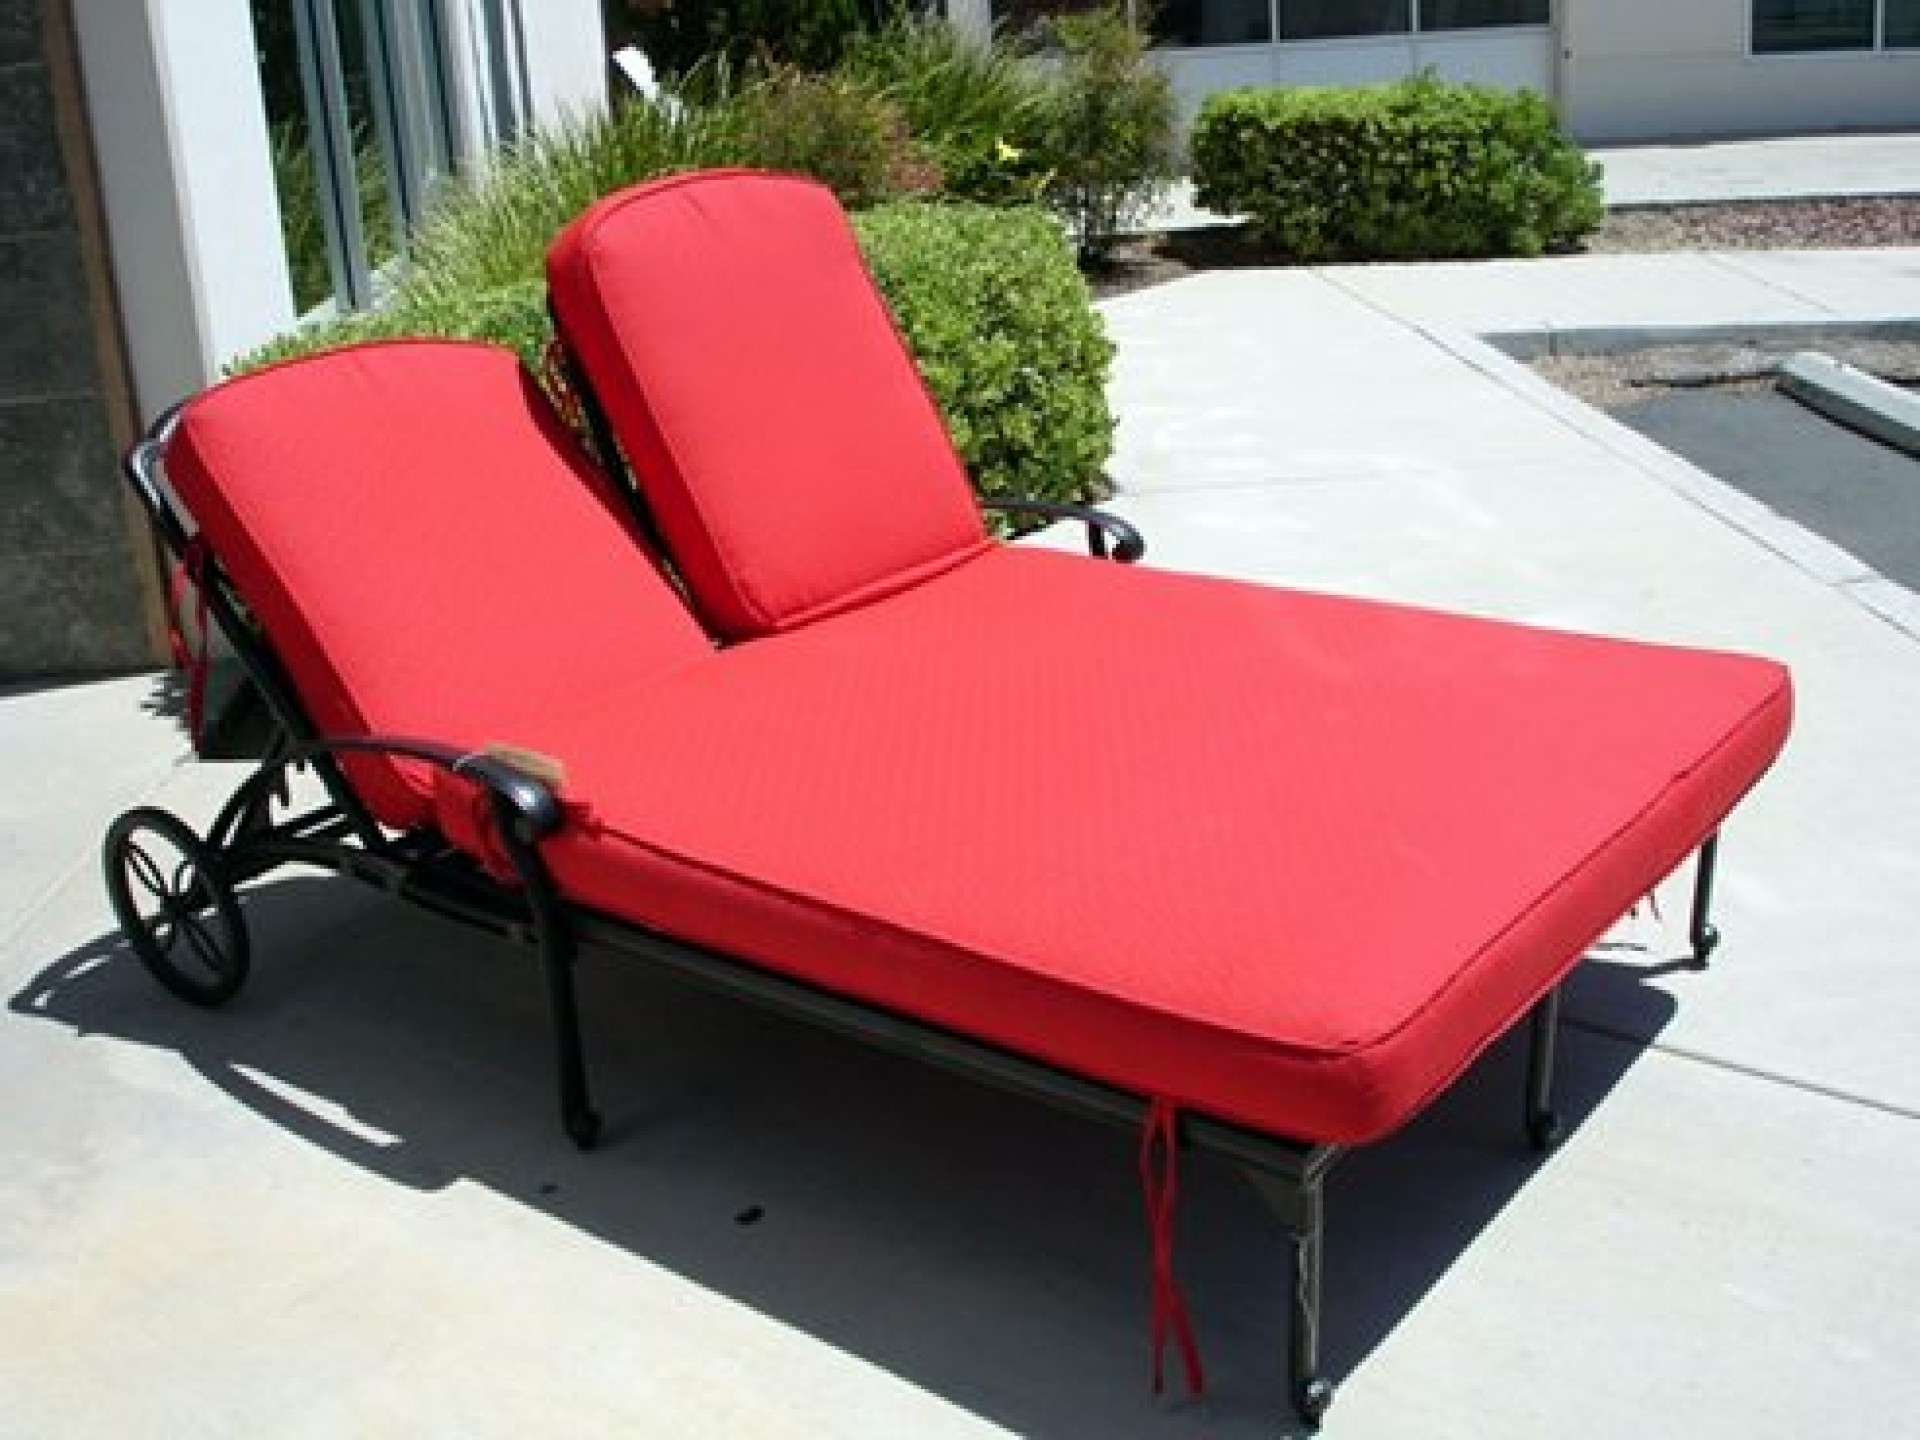 Newest Cushion For Chaise Lounge Chair • Lounge Chairs Ideas Inside Double Chaise Lounge Cushion (View 11 of 15)